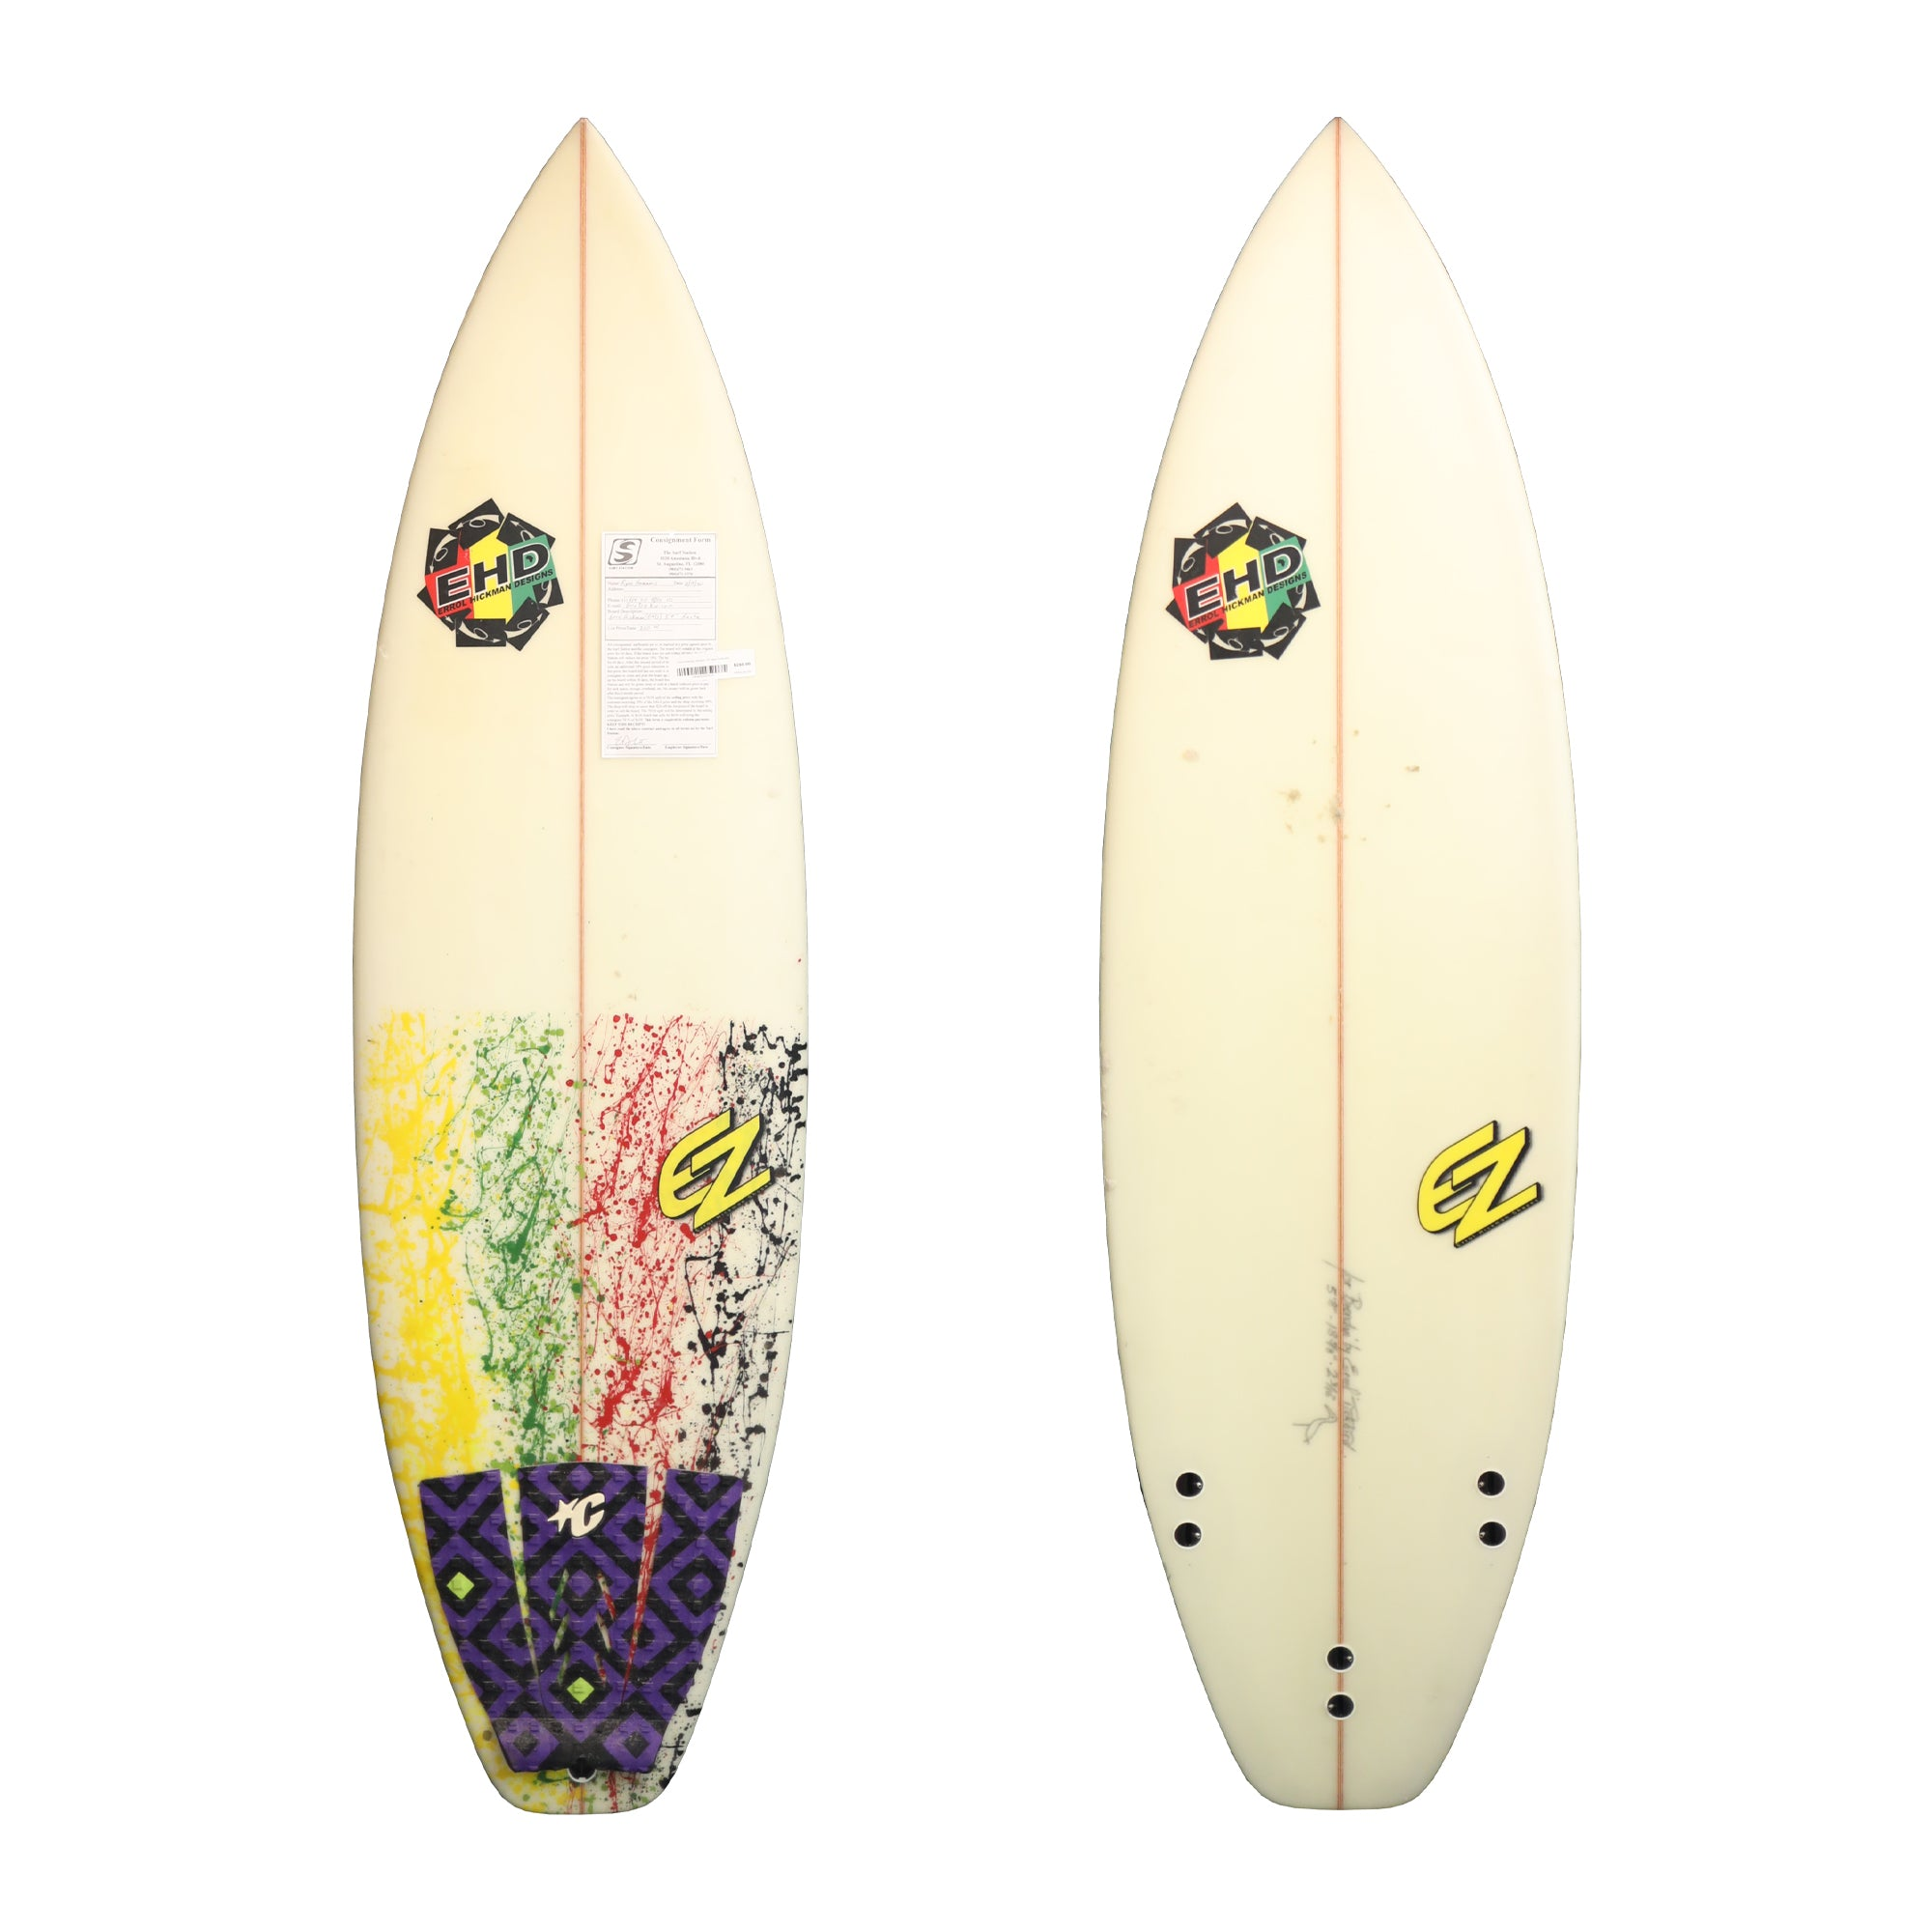 Errol Hickman Designs 5'8 Used Surfboard